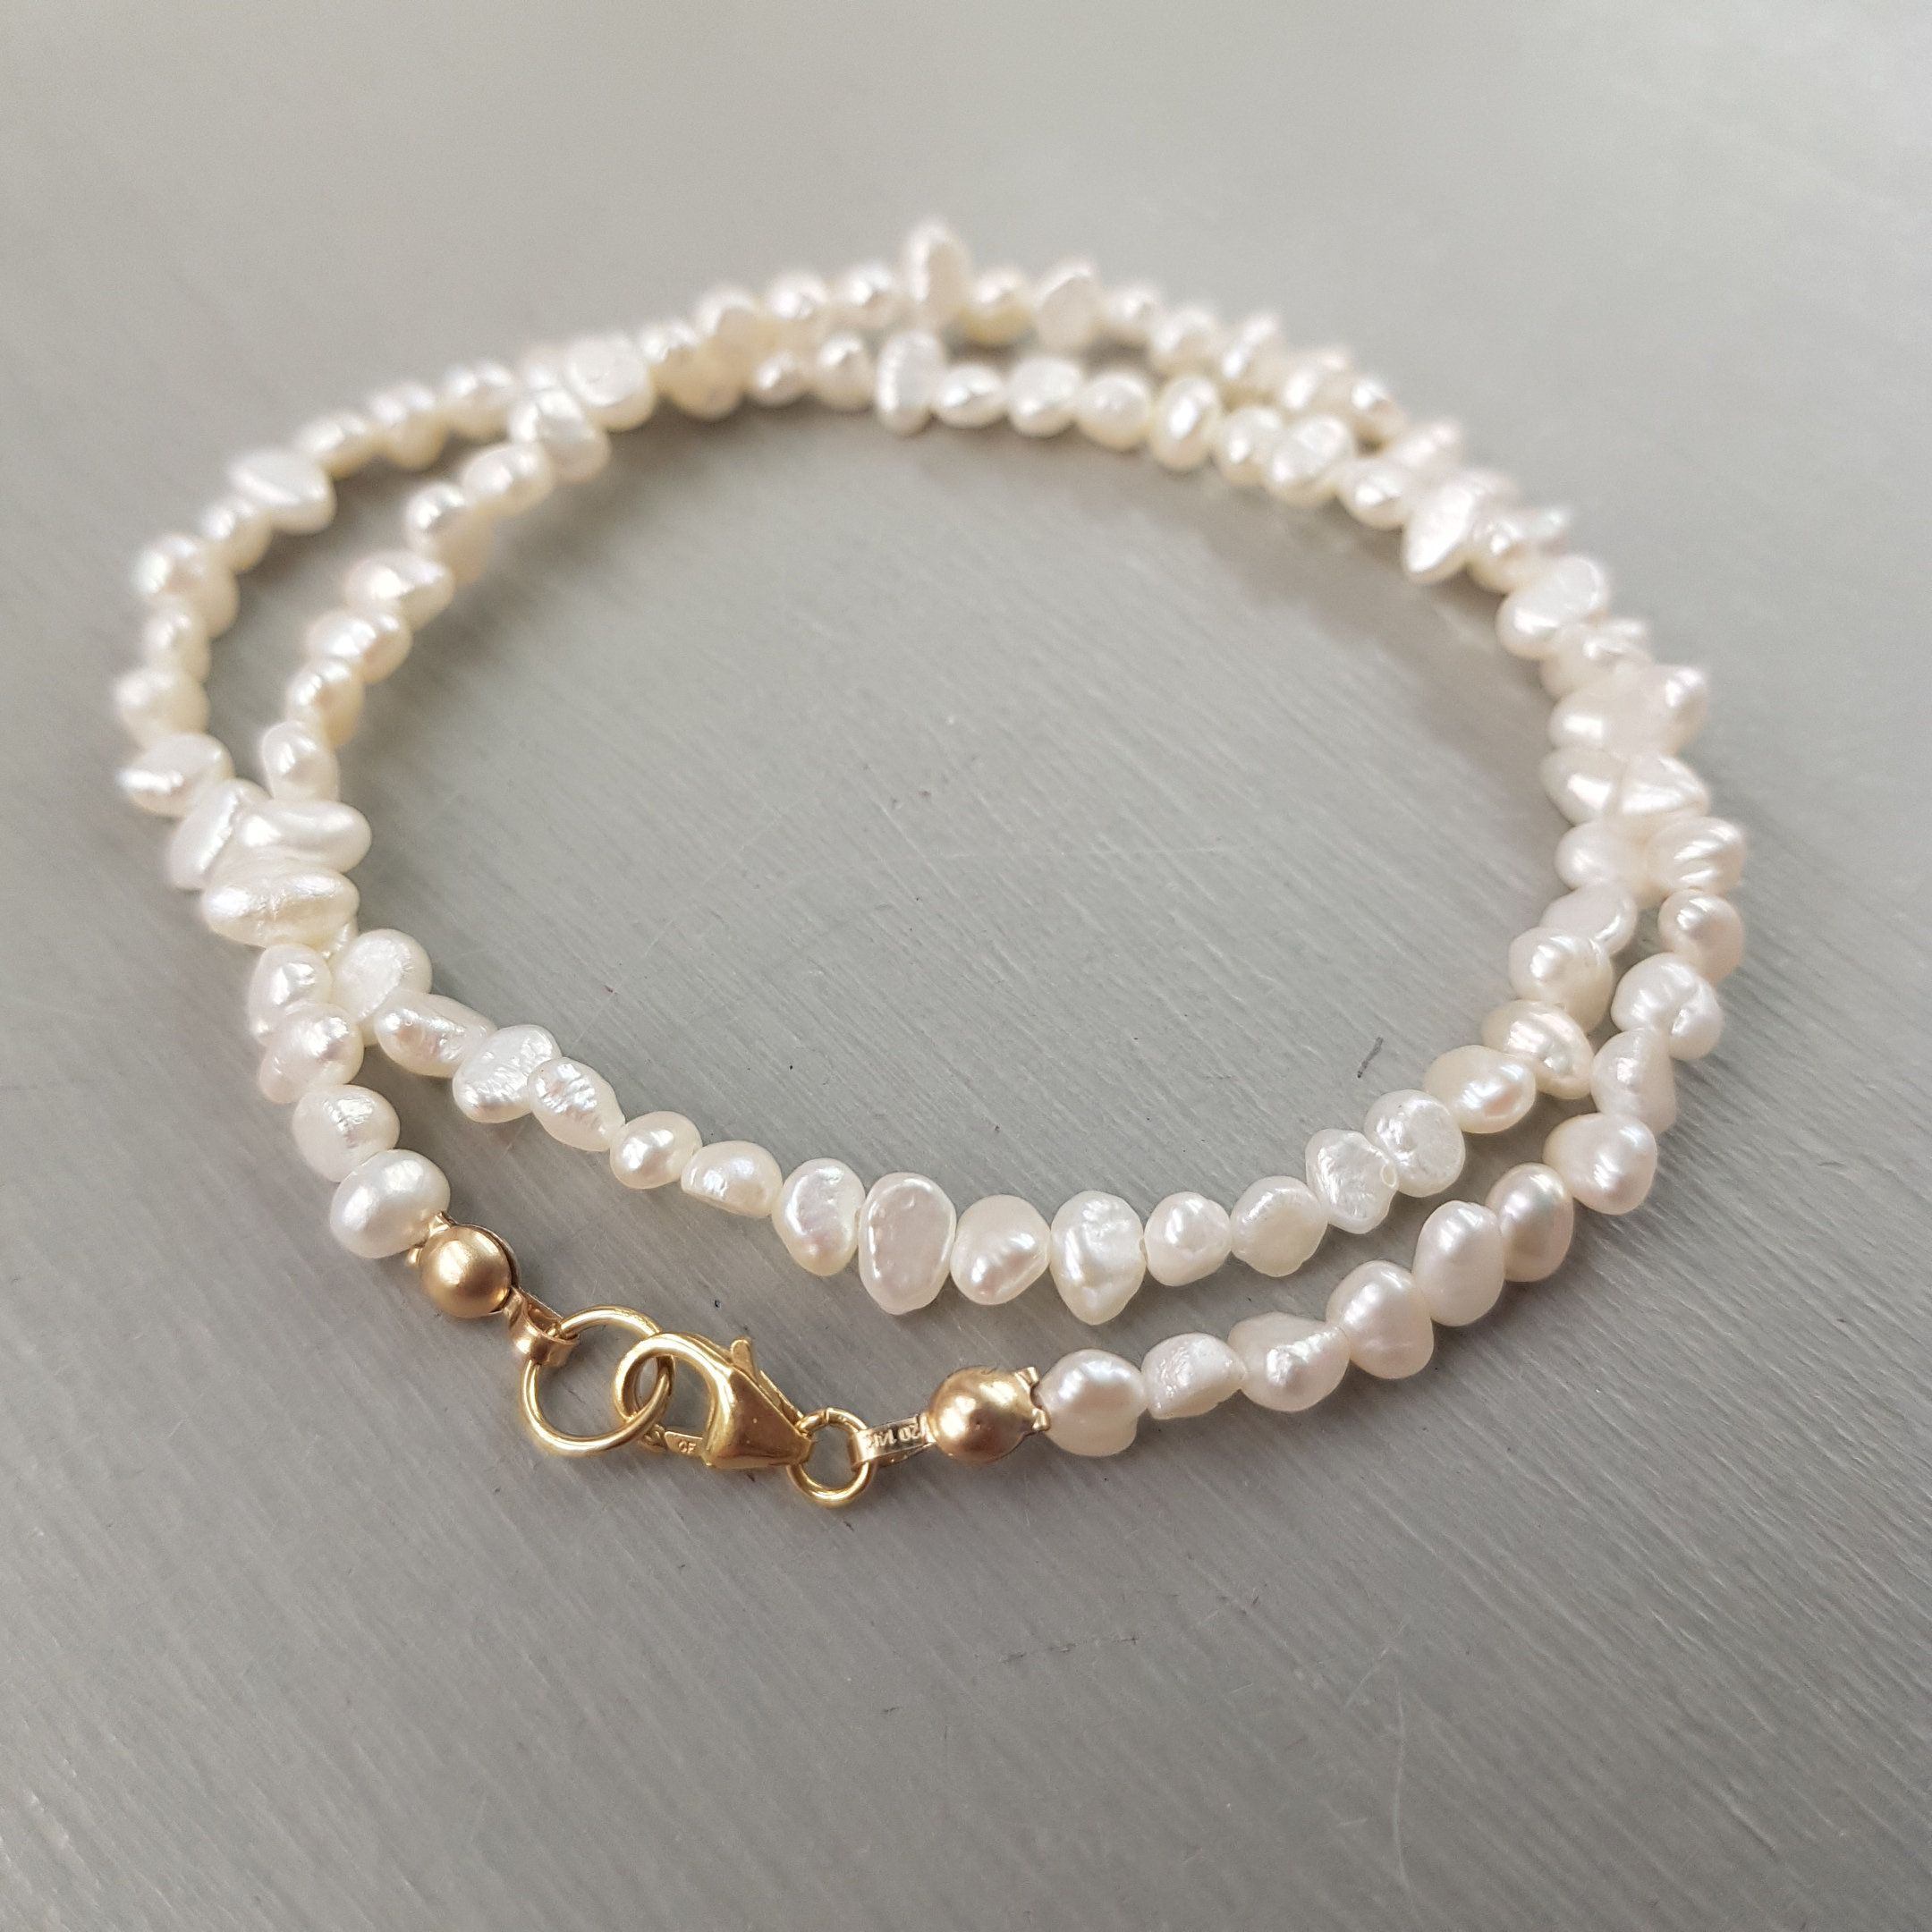 Bride Jewelry Freshwater Pearl Choker or Traditional Necklace